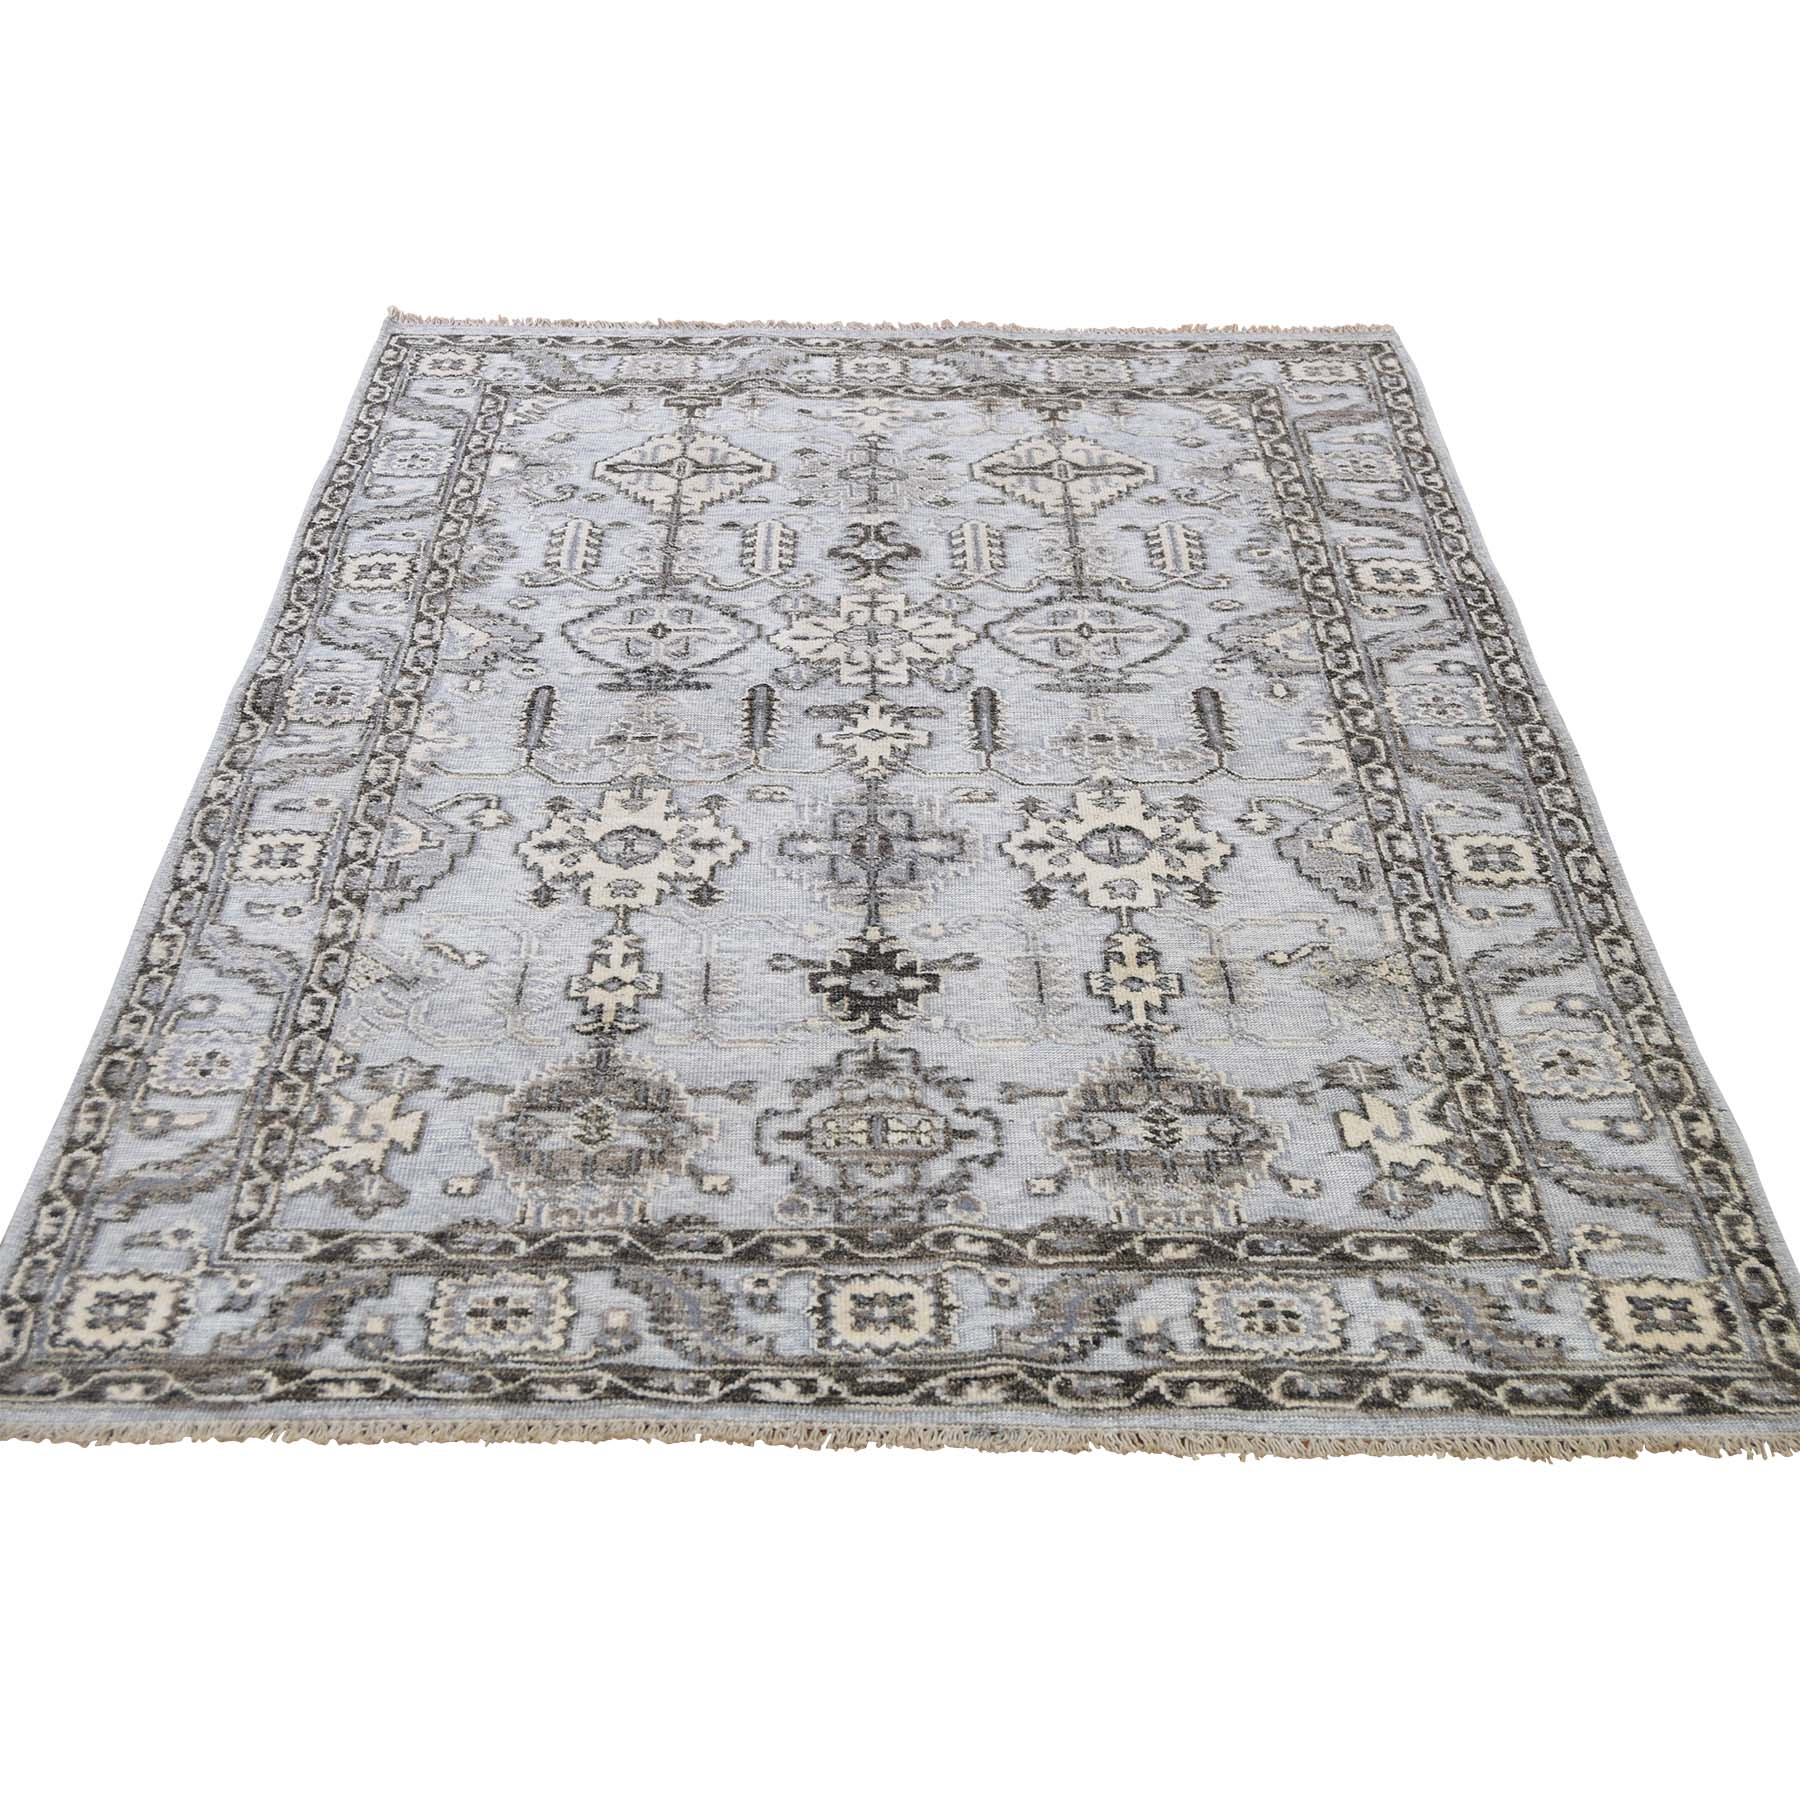 """4'1""""x6' Textured Pile With Textured Wool Hi-Low Hand-Knotted Oriental Rug 43580"""